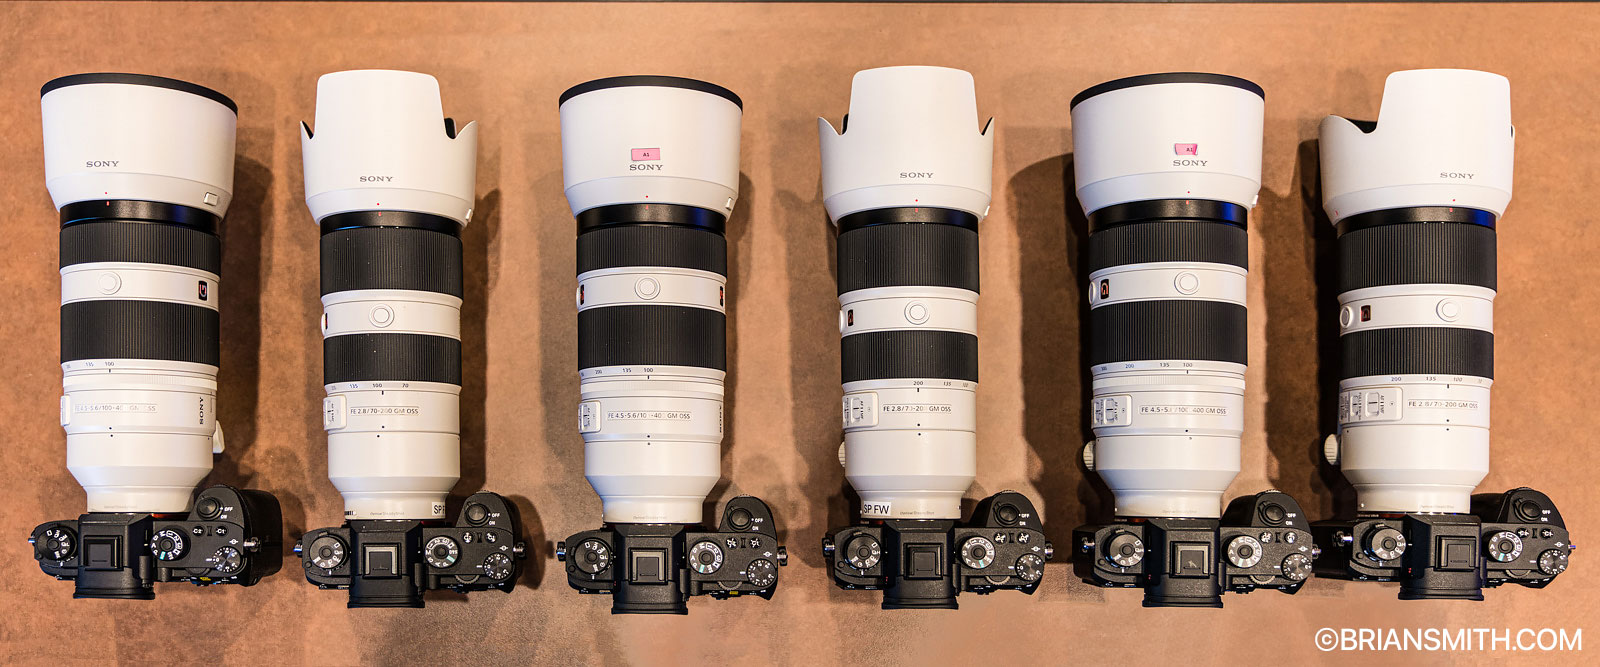 The first six Sony a9 cameras in the world